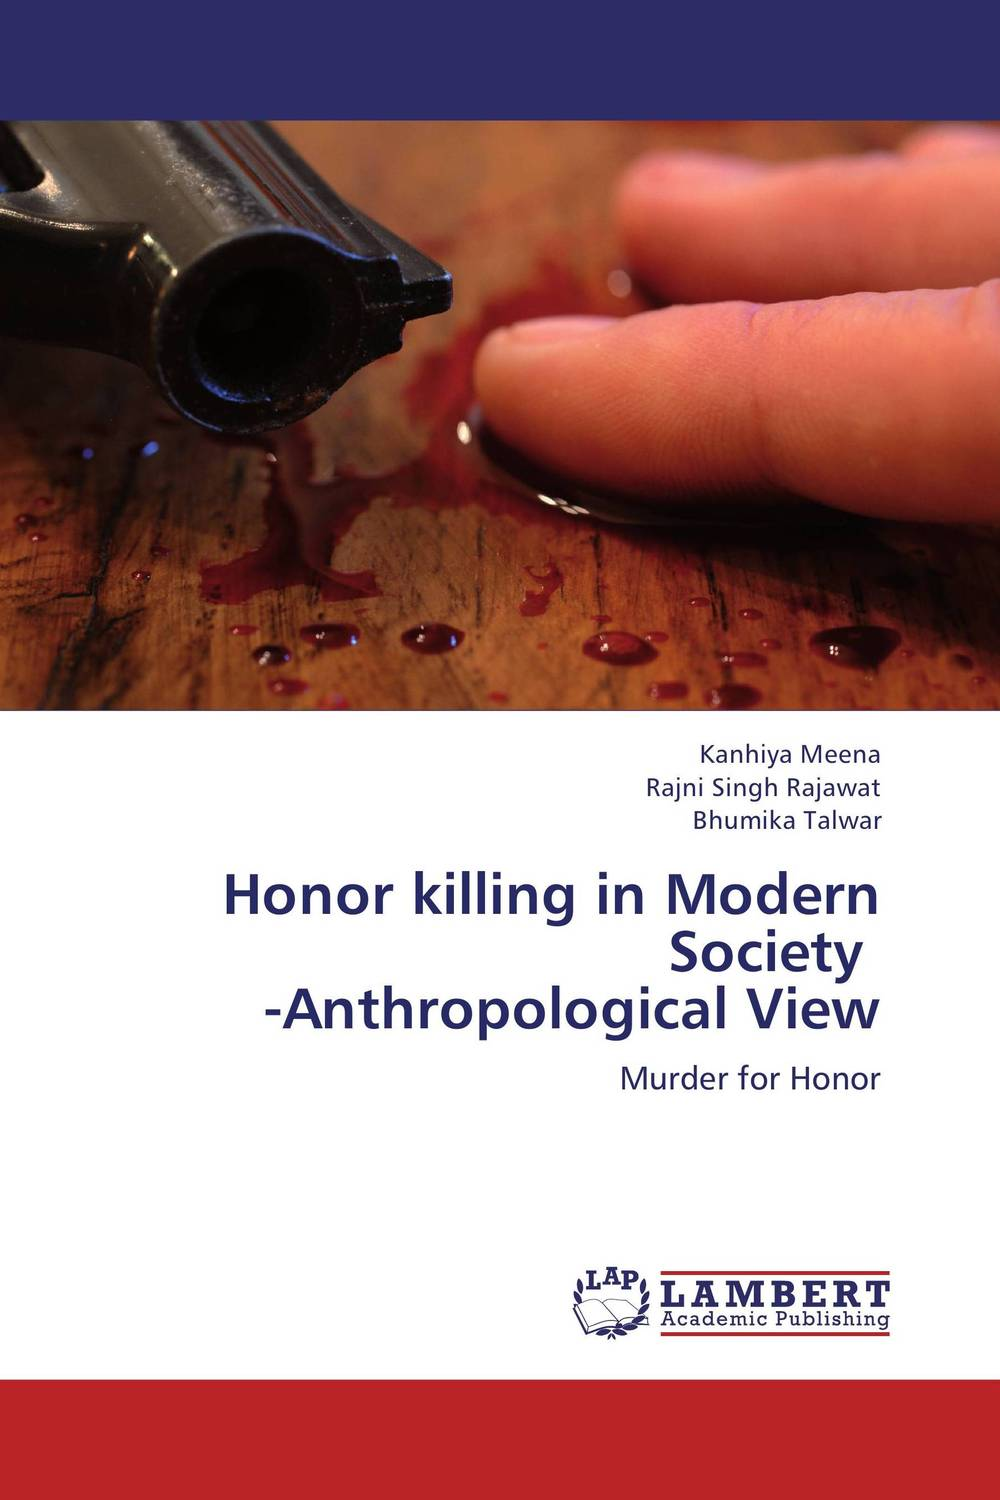 Honor killing in Modern Society -Anthropological View